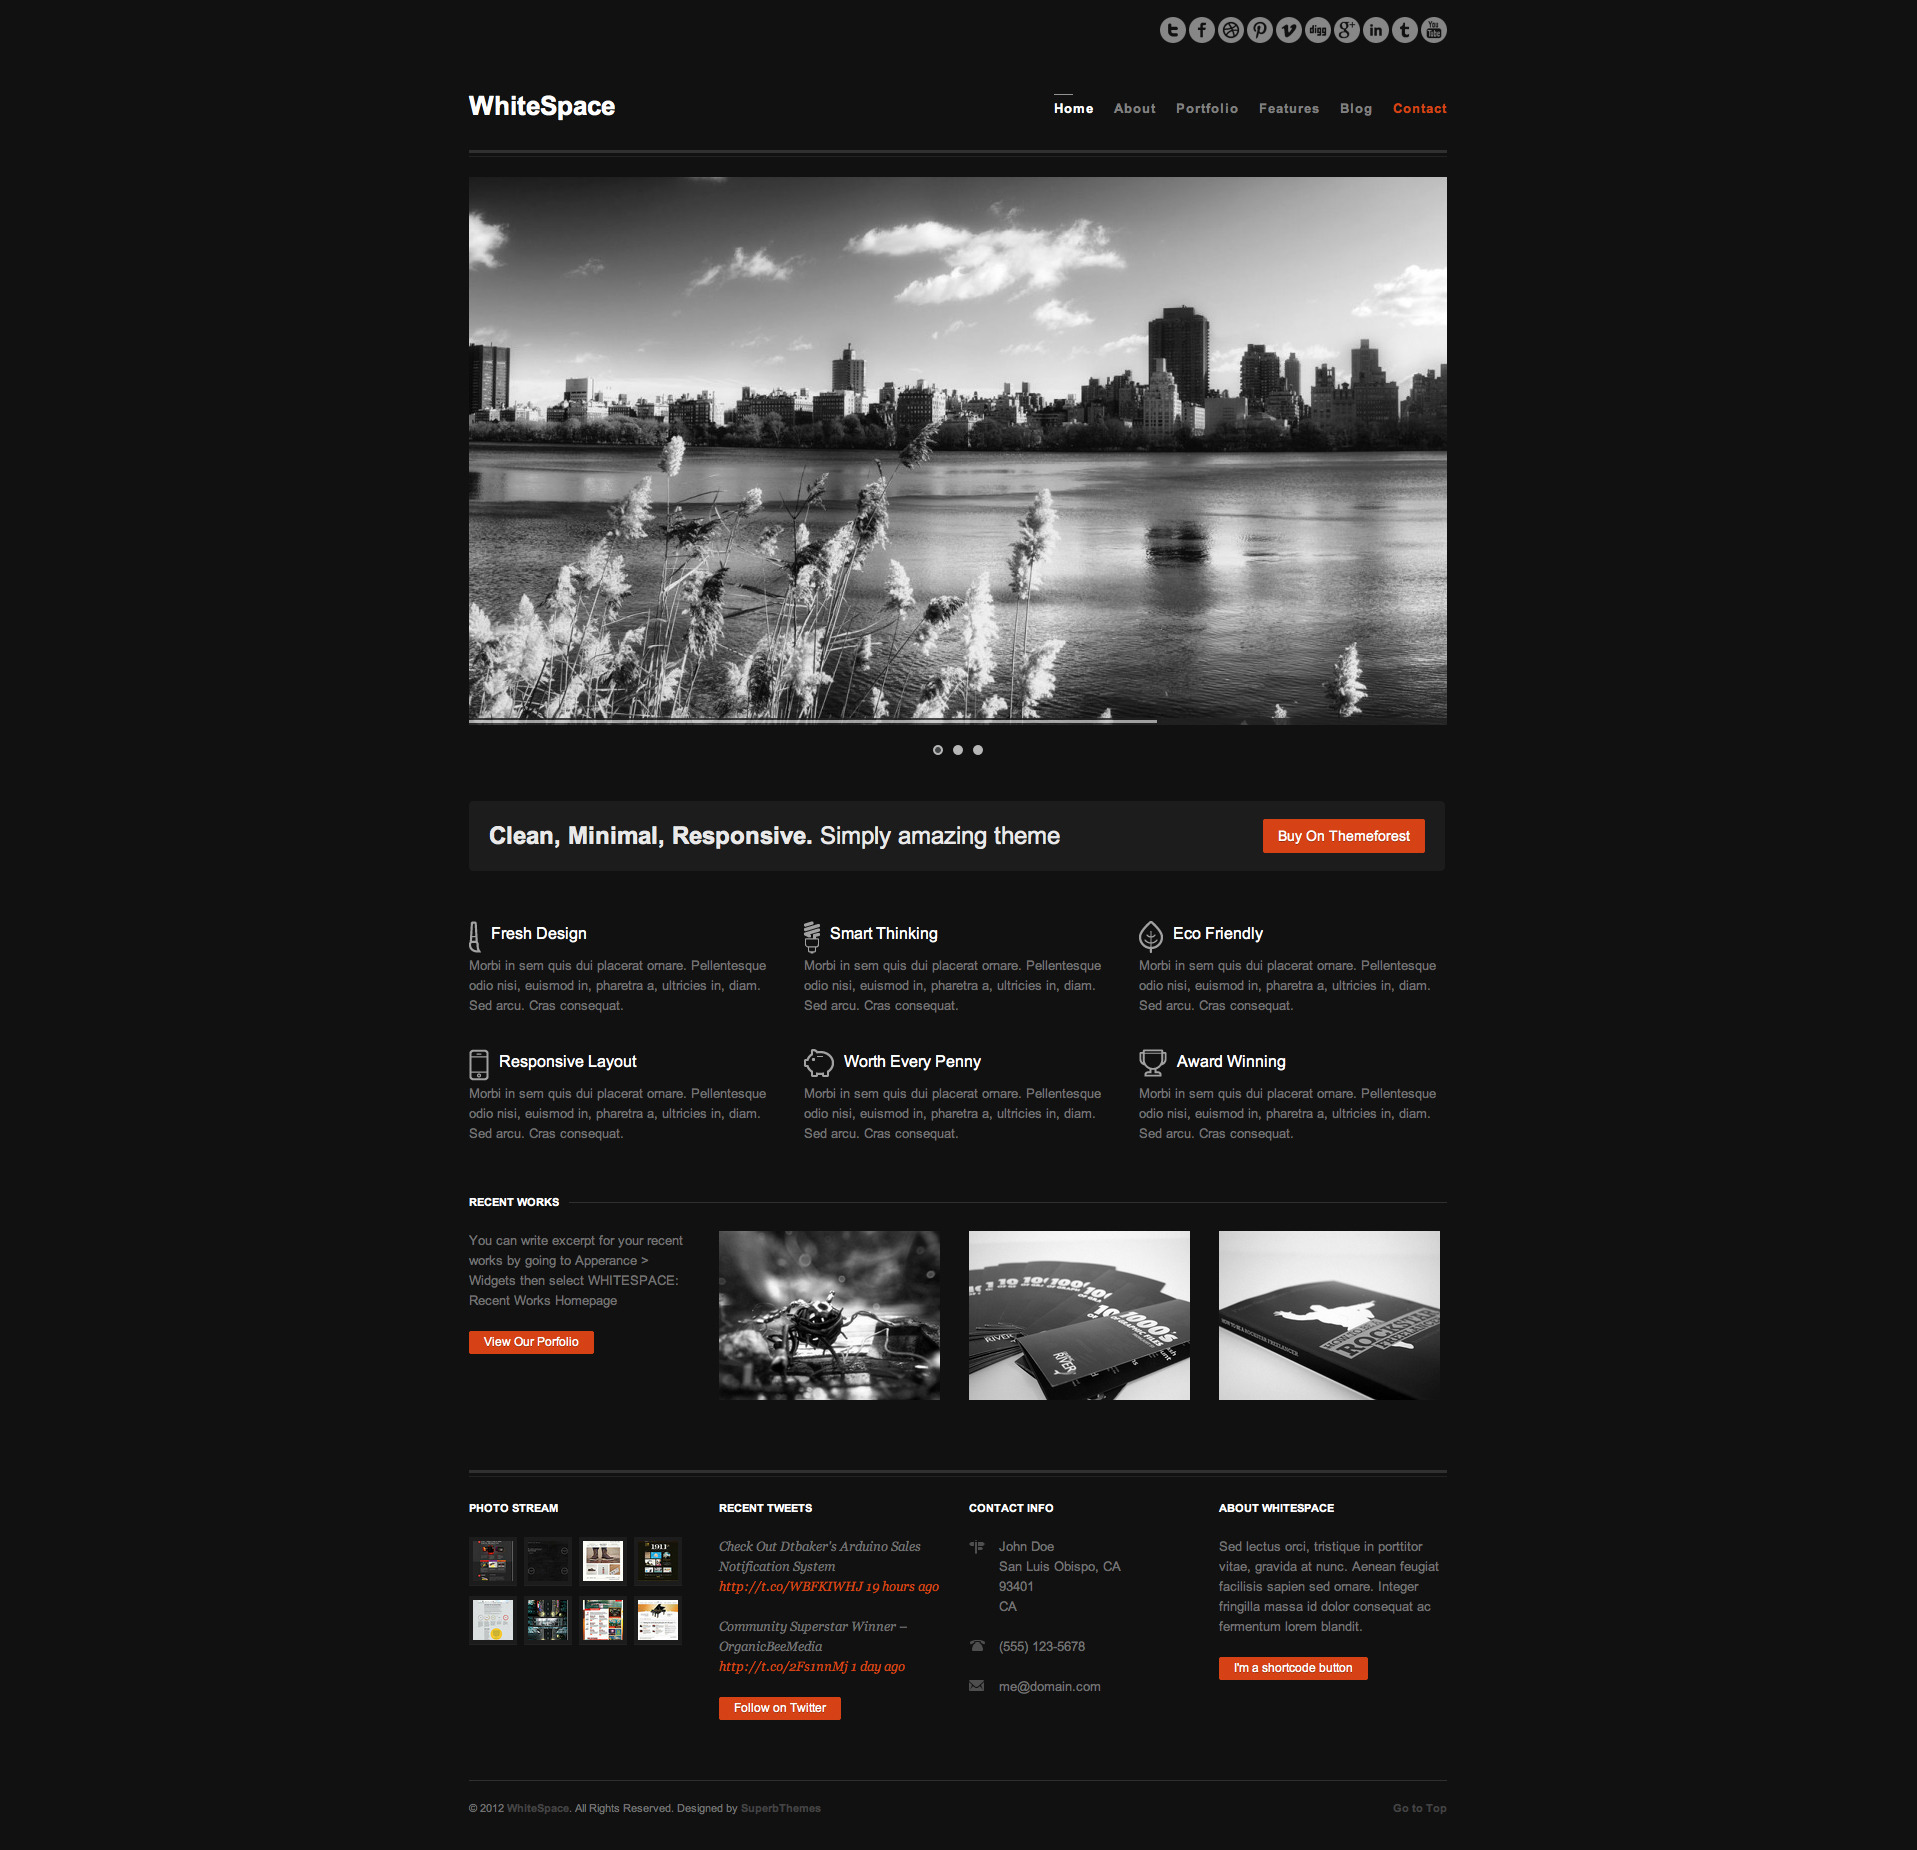 WhiteSpace: Responsive & Minimal Wordpress Theme -